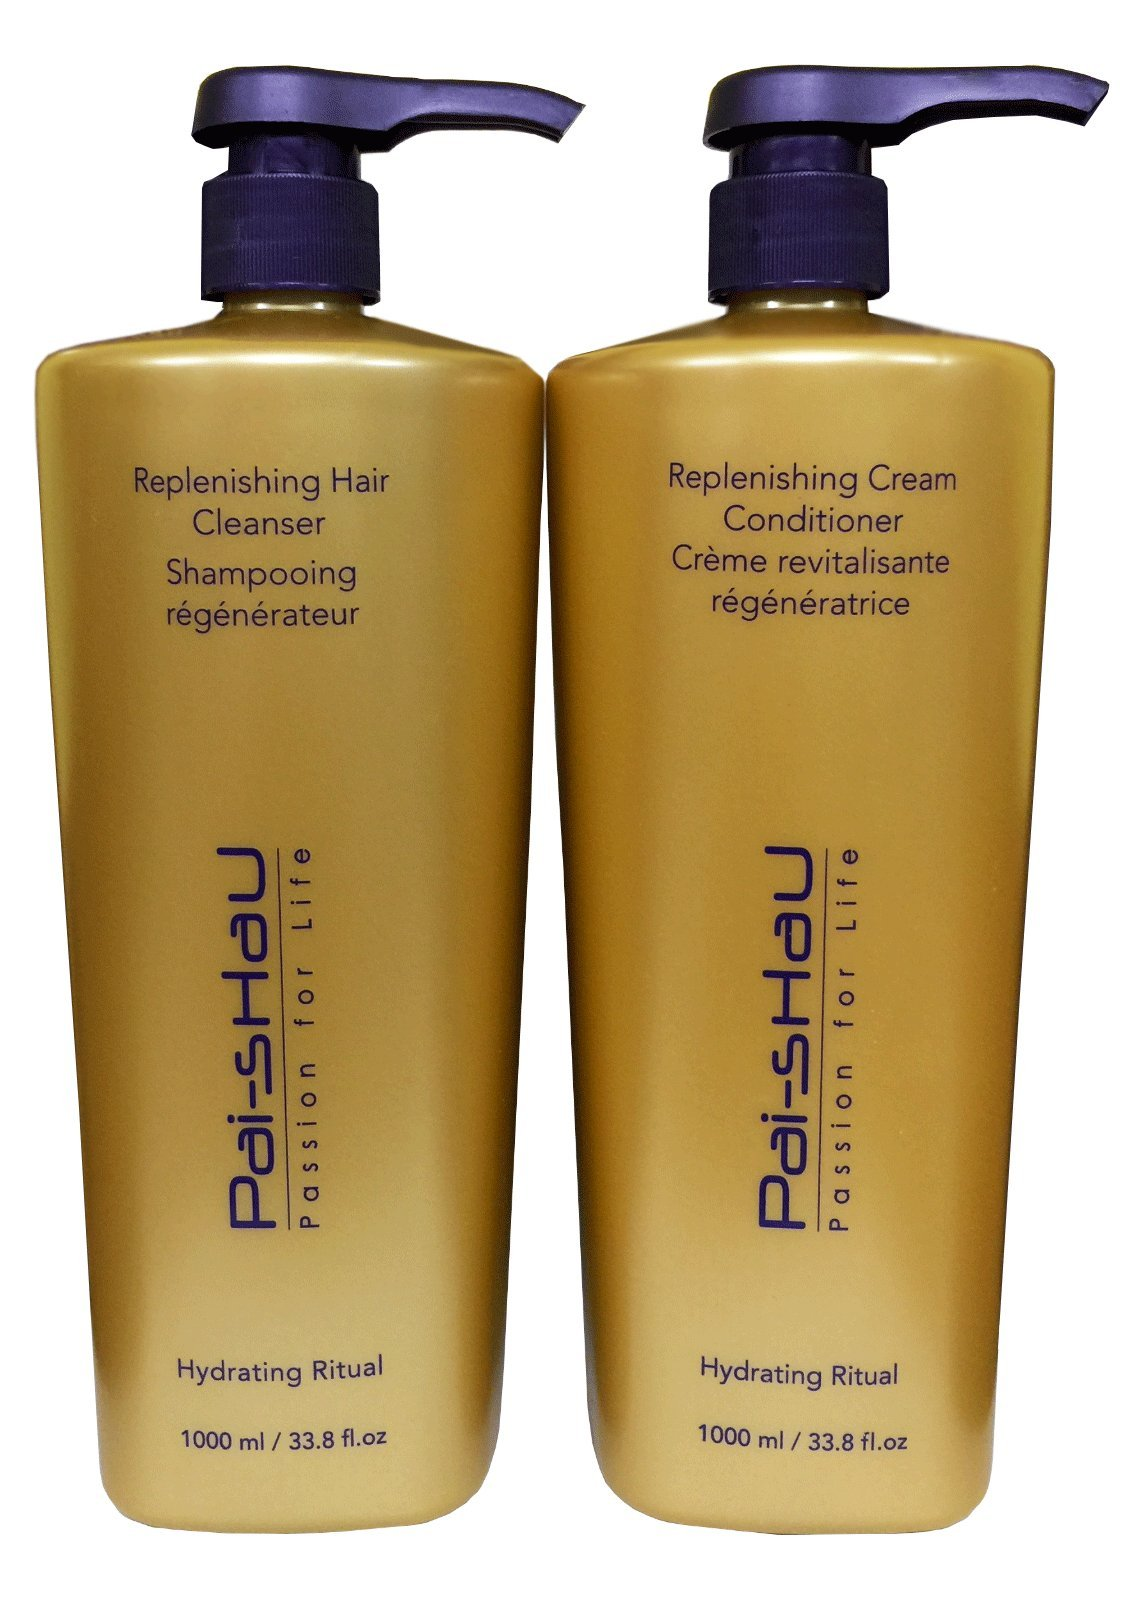 Pai Shau Replenishing Cleanser Shampoo & Cream Conditioner 33.8 Oz / Liter Duo